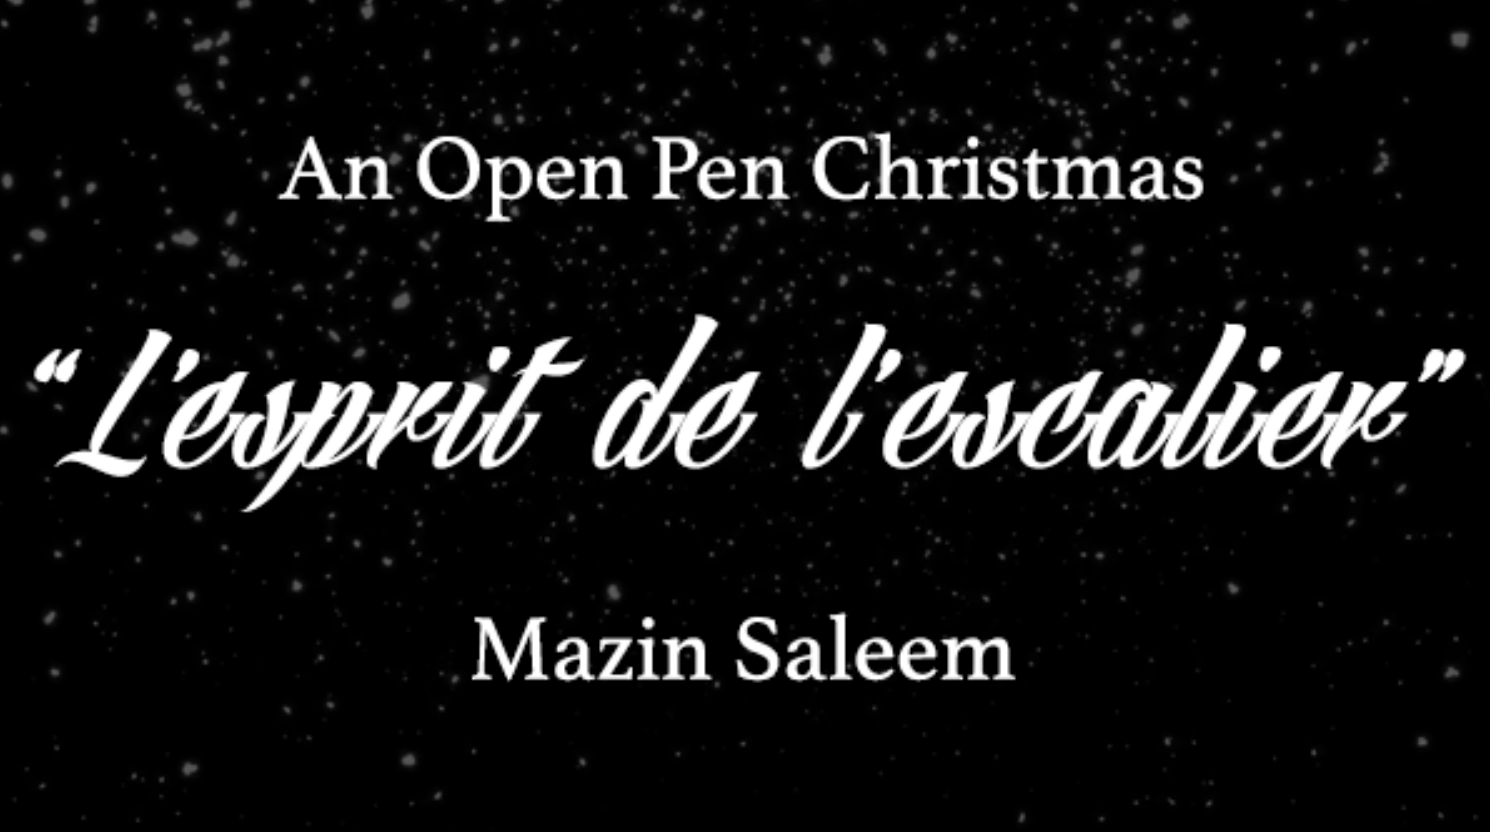 AN OPEN PEN CHRISTMAS: L'esprit de l'escalier